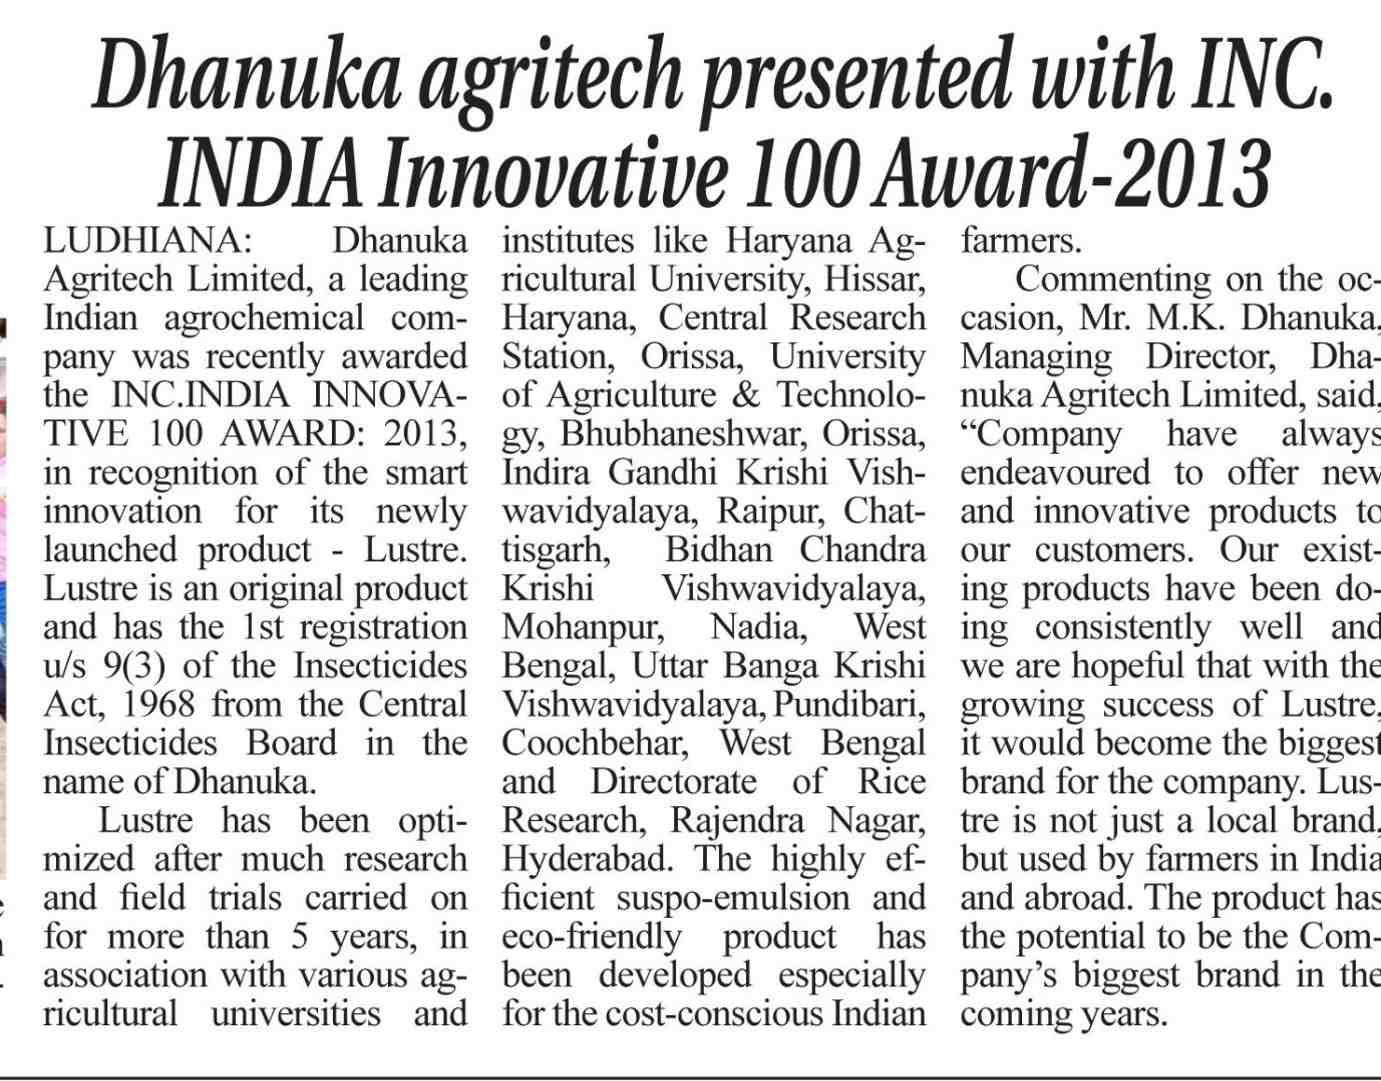 2014 Yugmarg - DAL presented with INC India Innovative Hudred Award